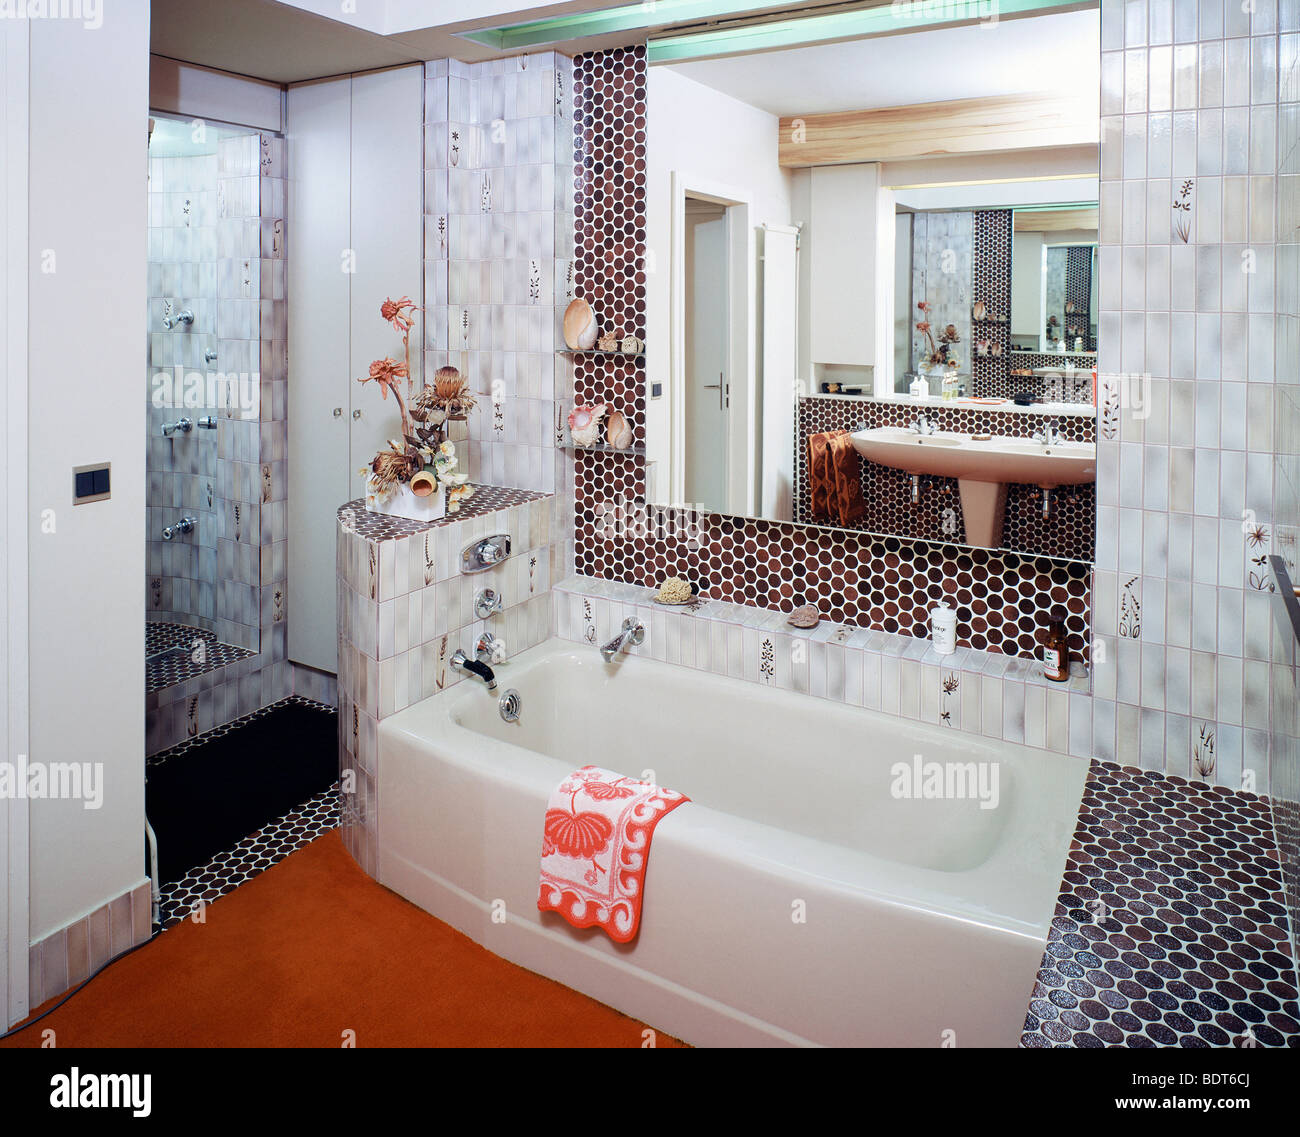 Fliesen Badezimmer Retro Interiors Retro Bathrooms Domestic Stockfotos Interiors Retro